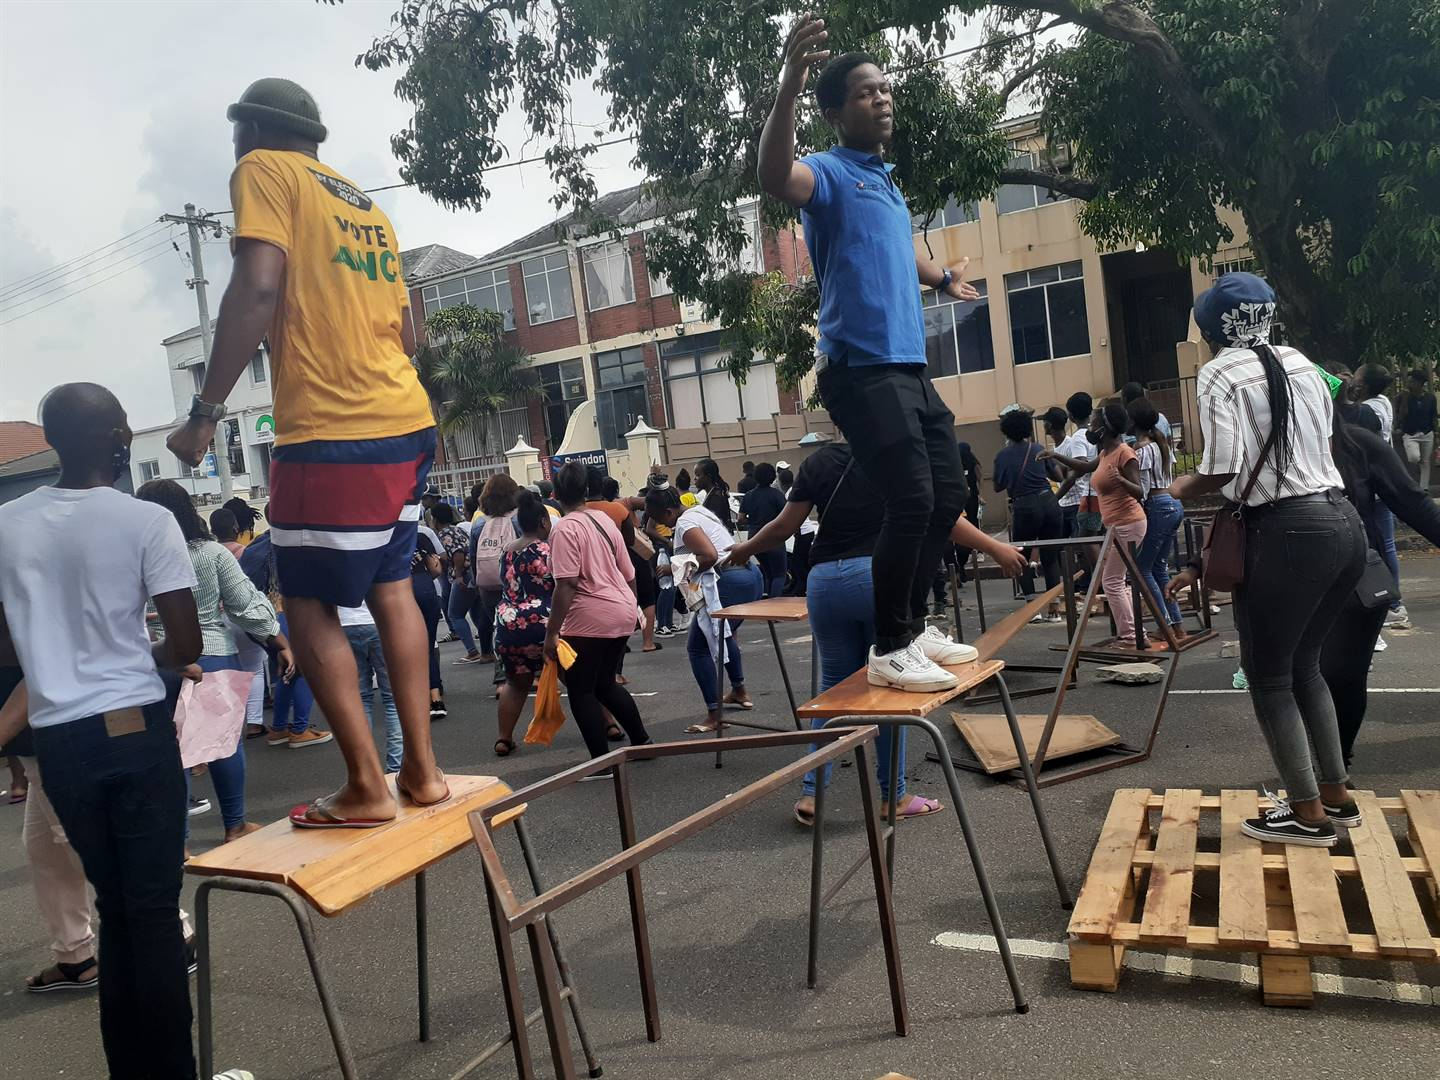 Students blocked off Dunkirk Road in Umbilo, Durban with desks and chairs.